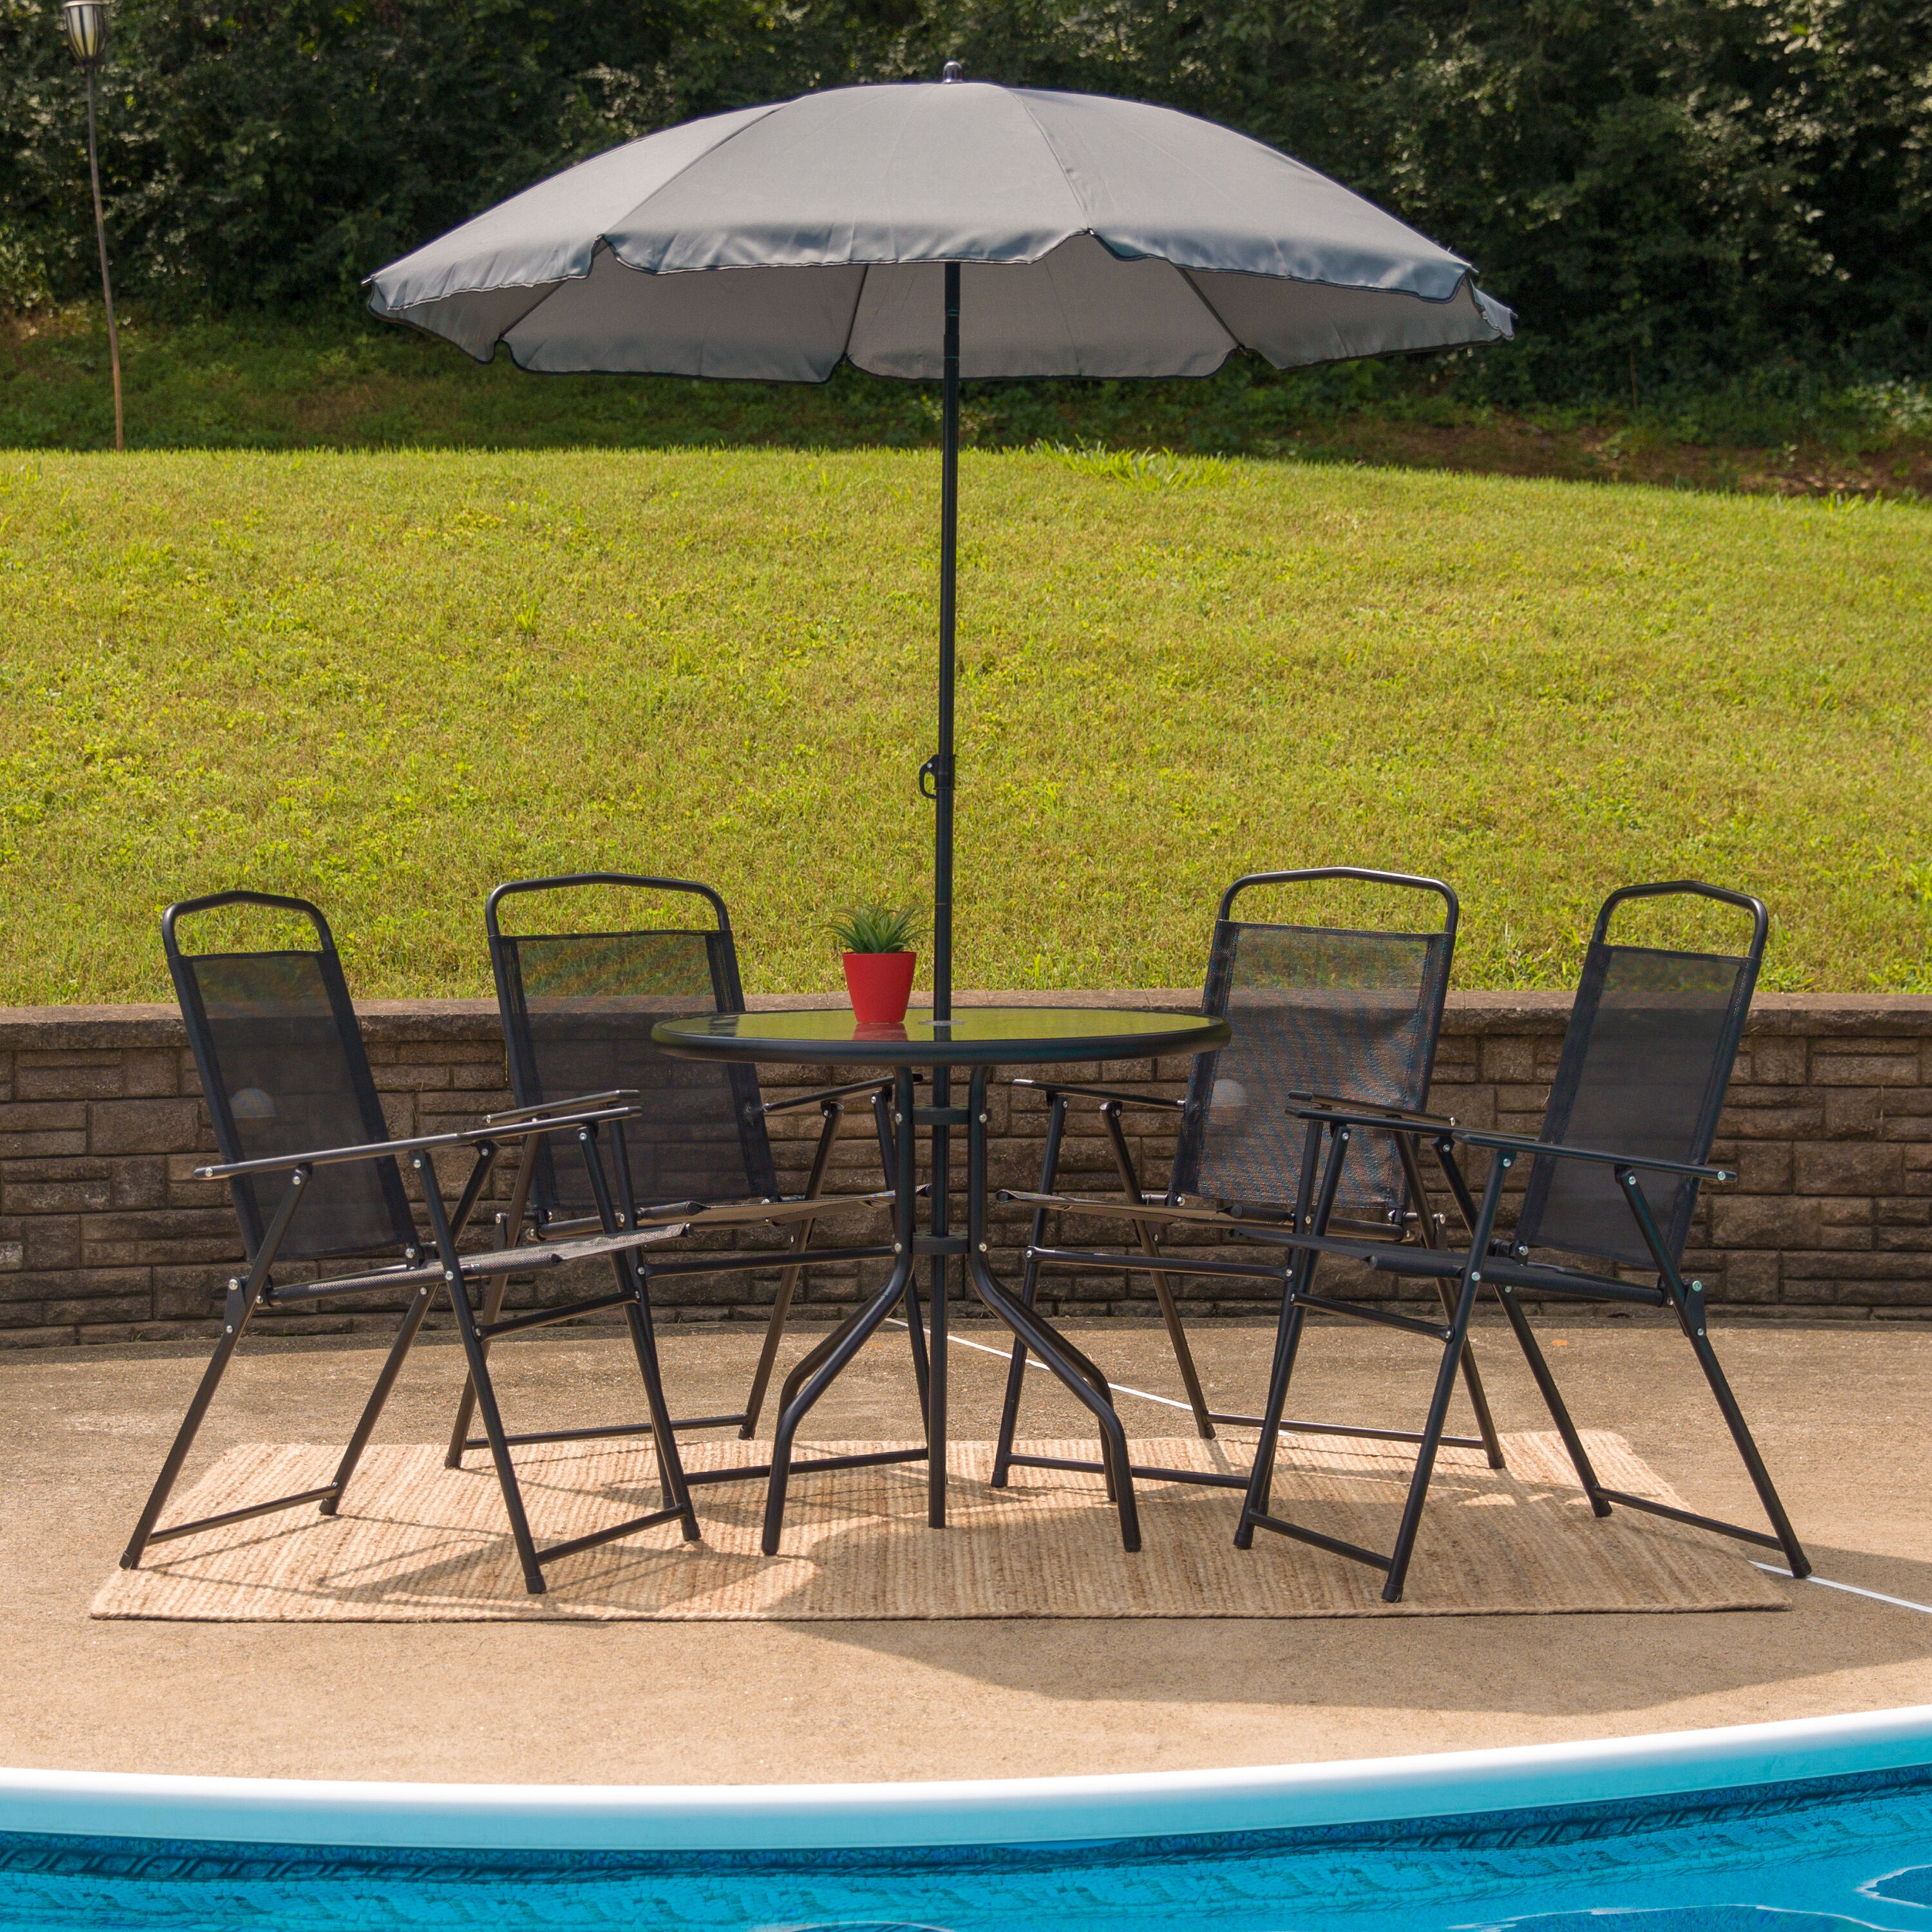 folding chair with umbrella how to paint kitchen table and chairs 6pc black patio set gm 202012 bk gg foldingchairs4less com